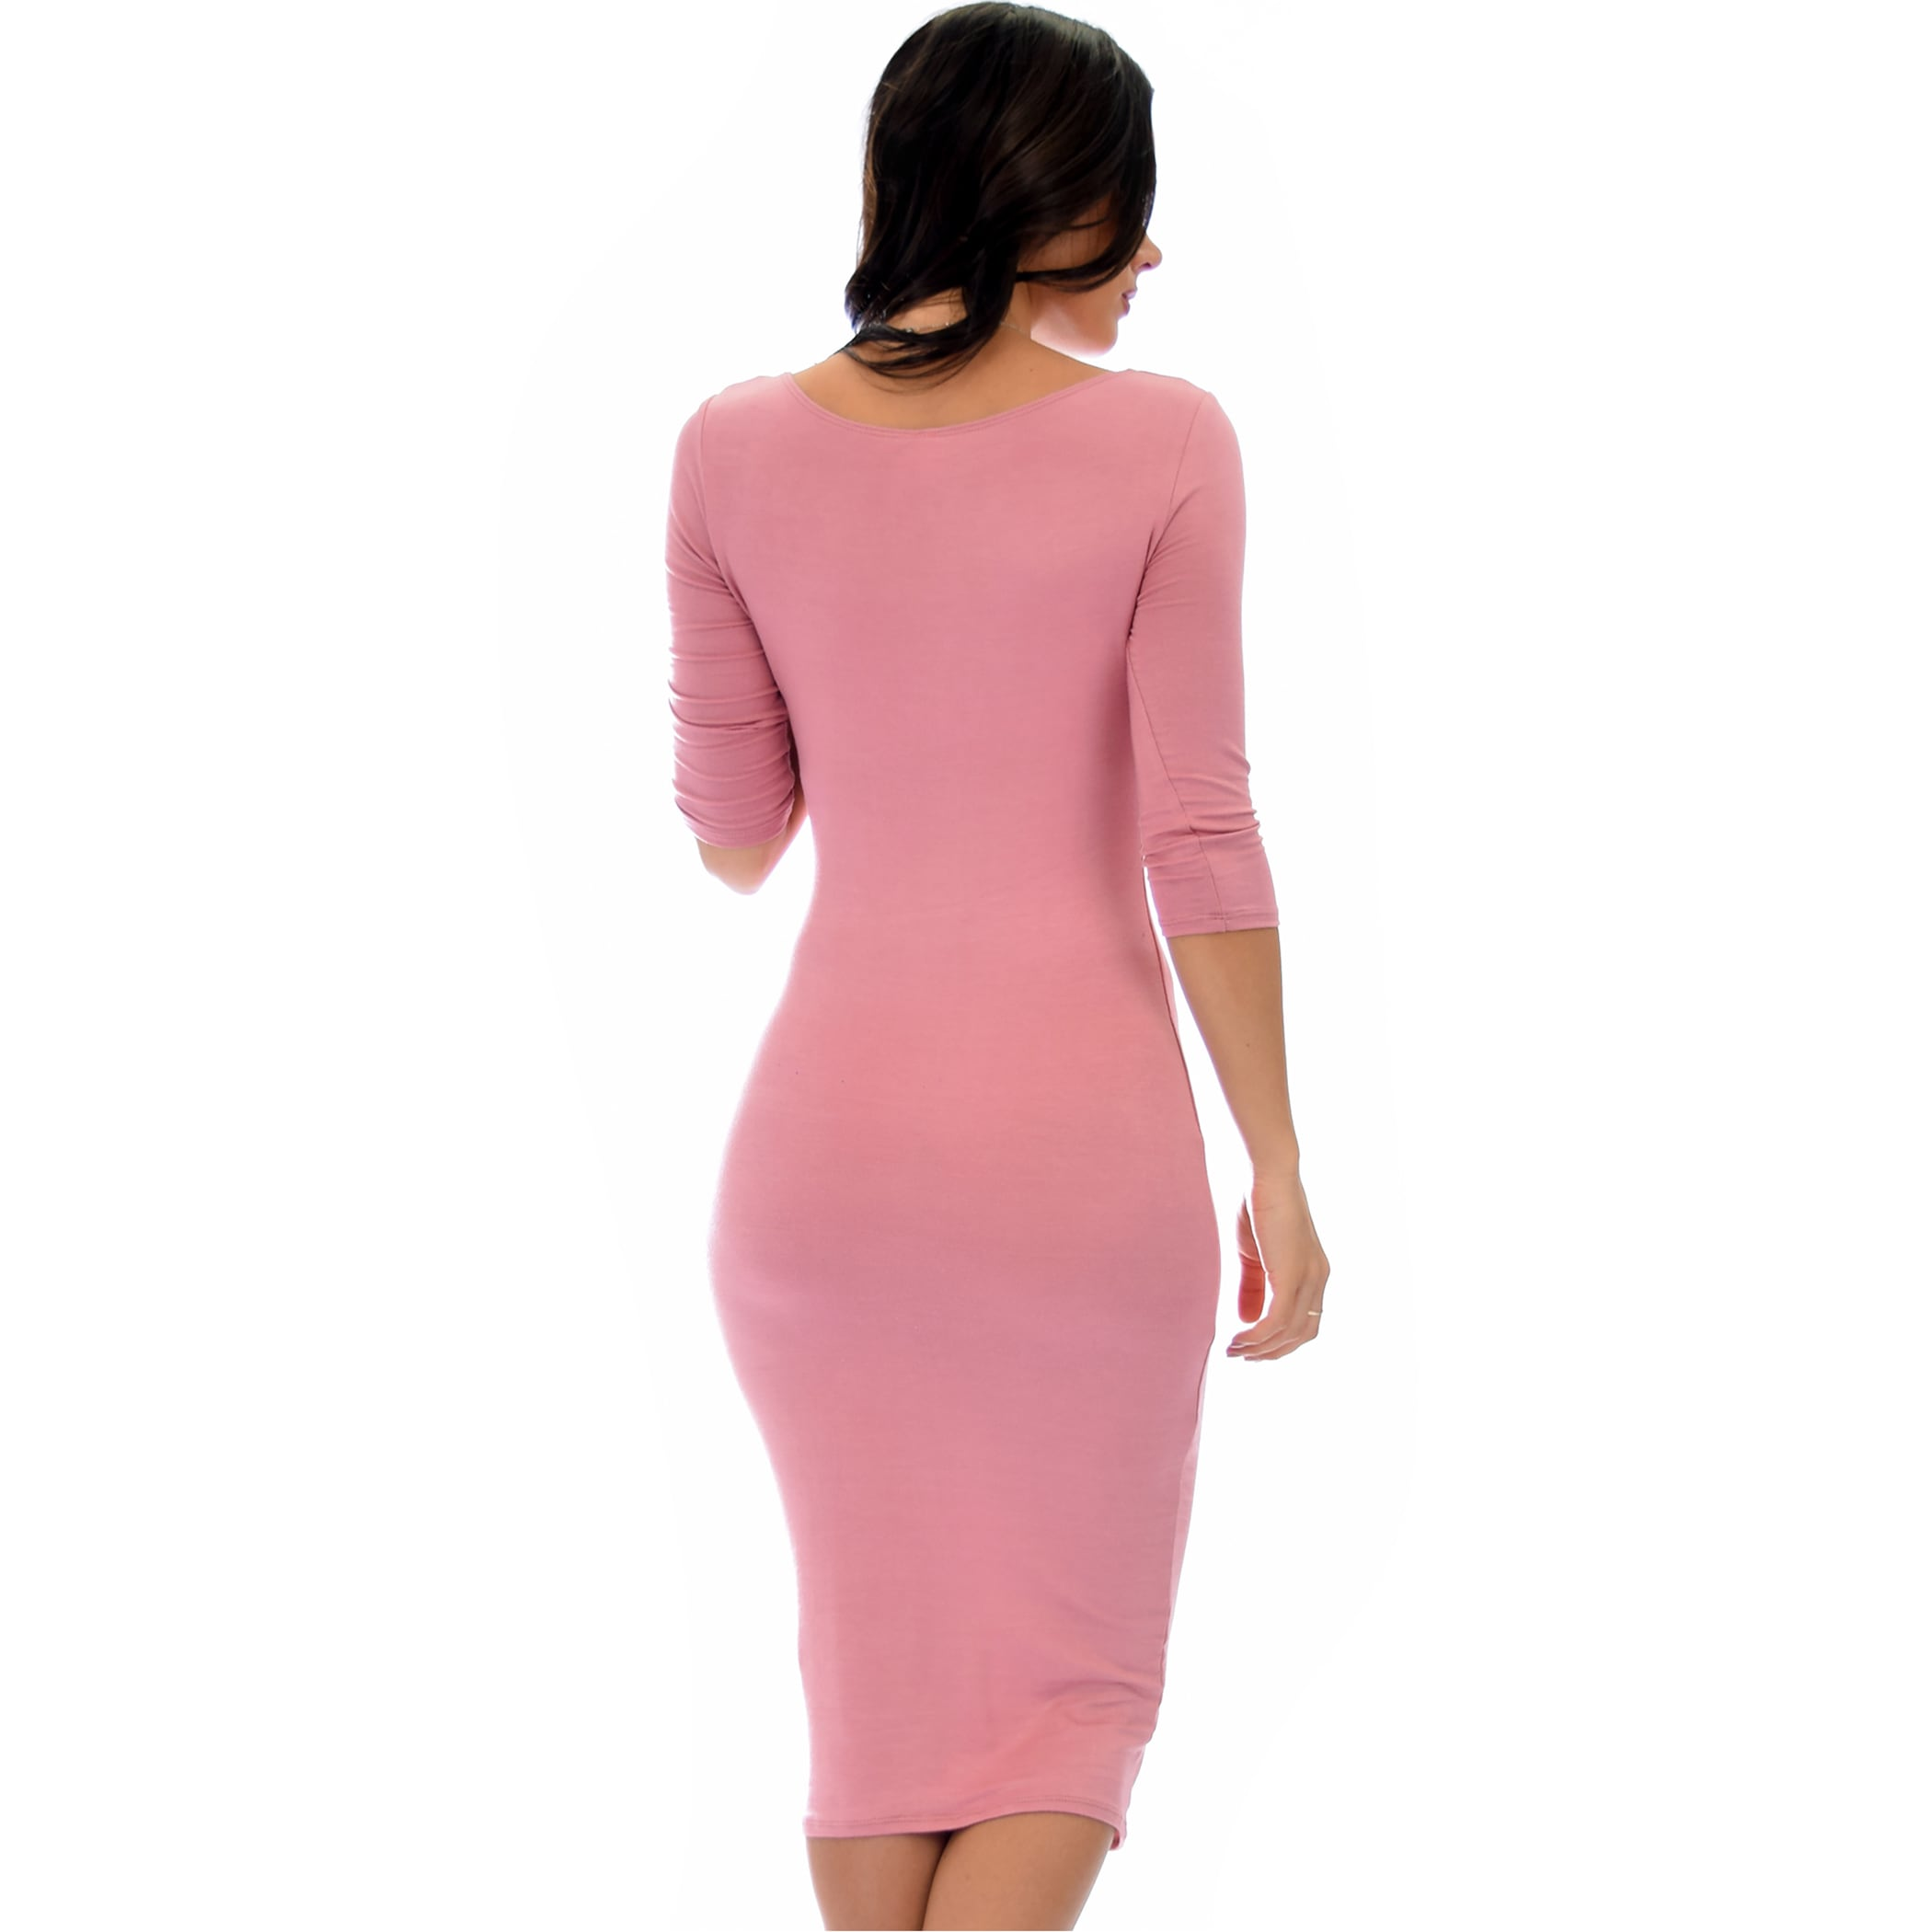 8734892ab0b2 Shop Lyss Loo True 2 You 3/4 Sleeve Midi Dress D2049 - Free Shipping On  Orders Over $45 - Overstock - 14084679